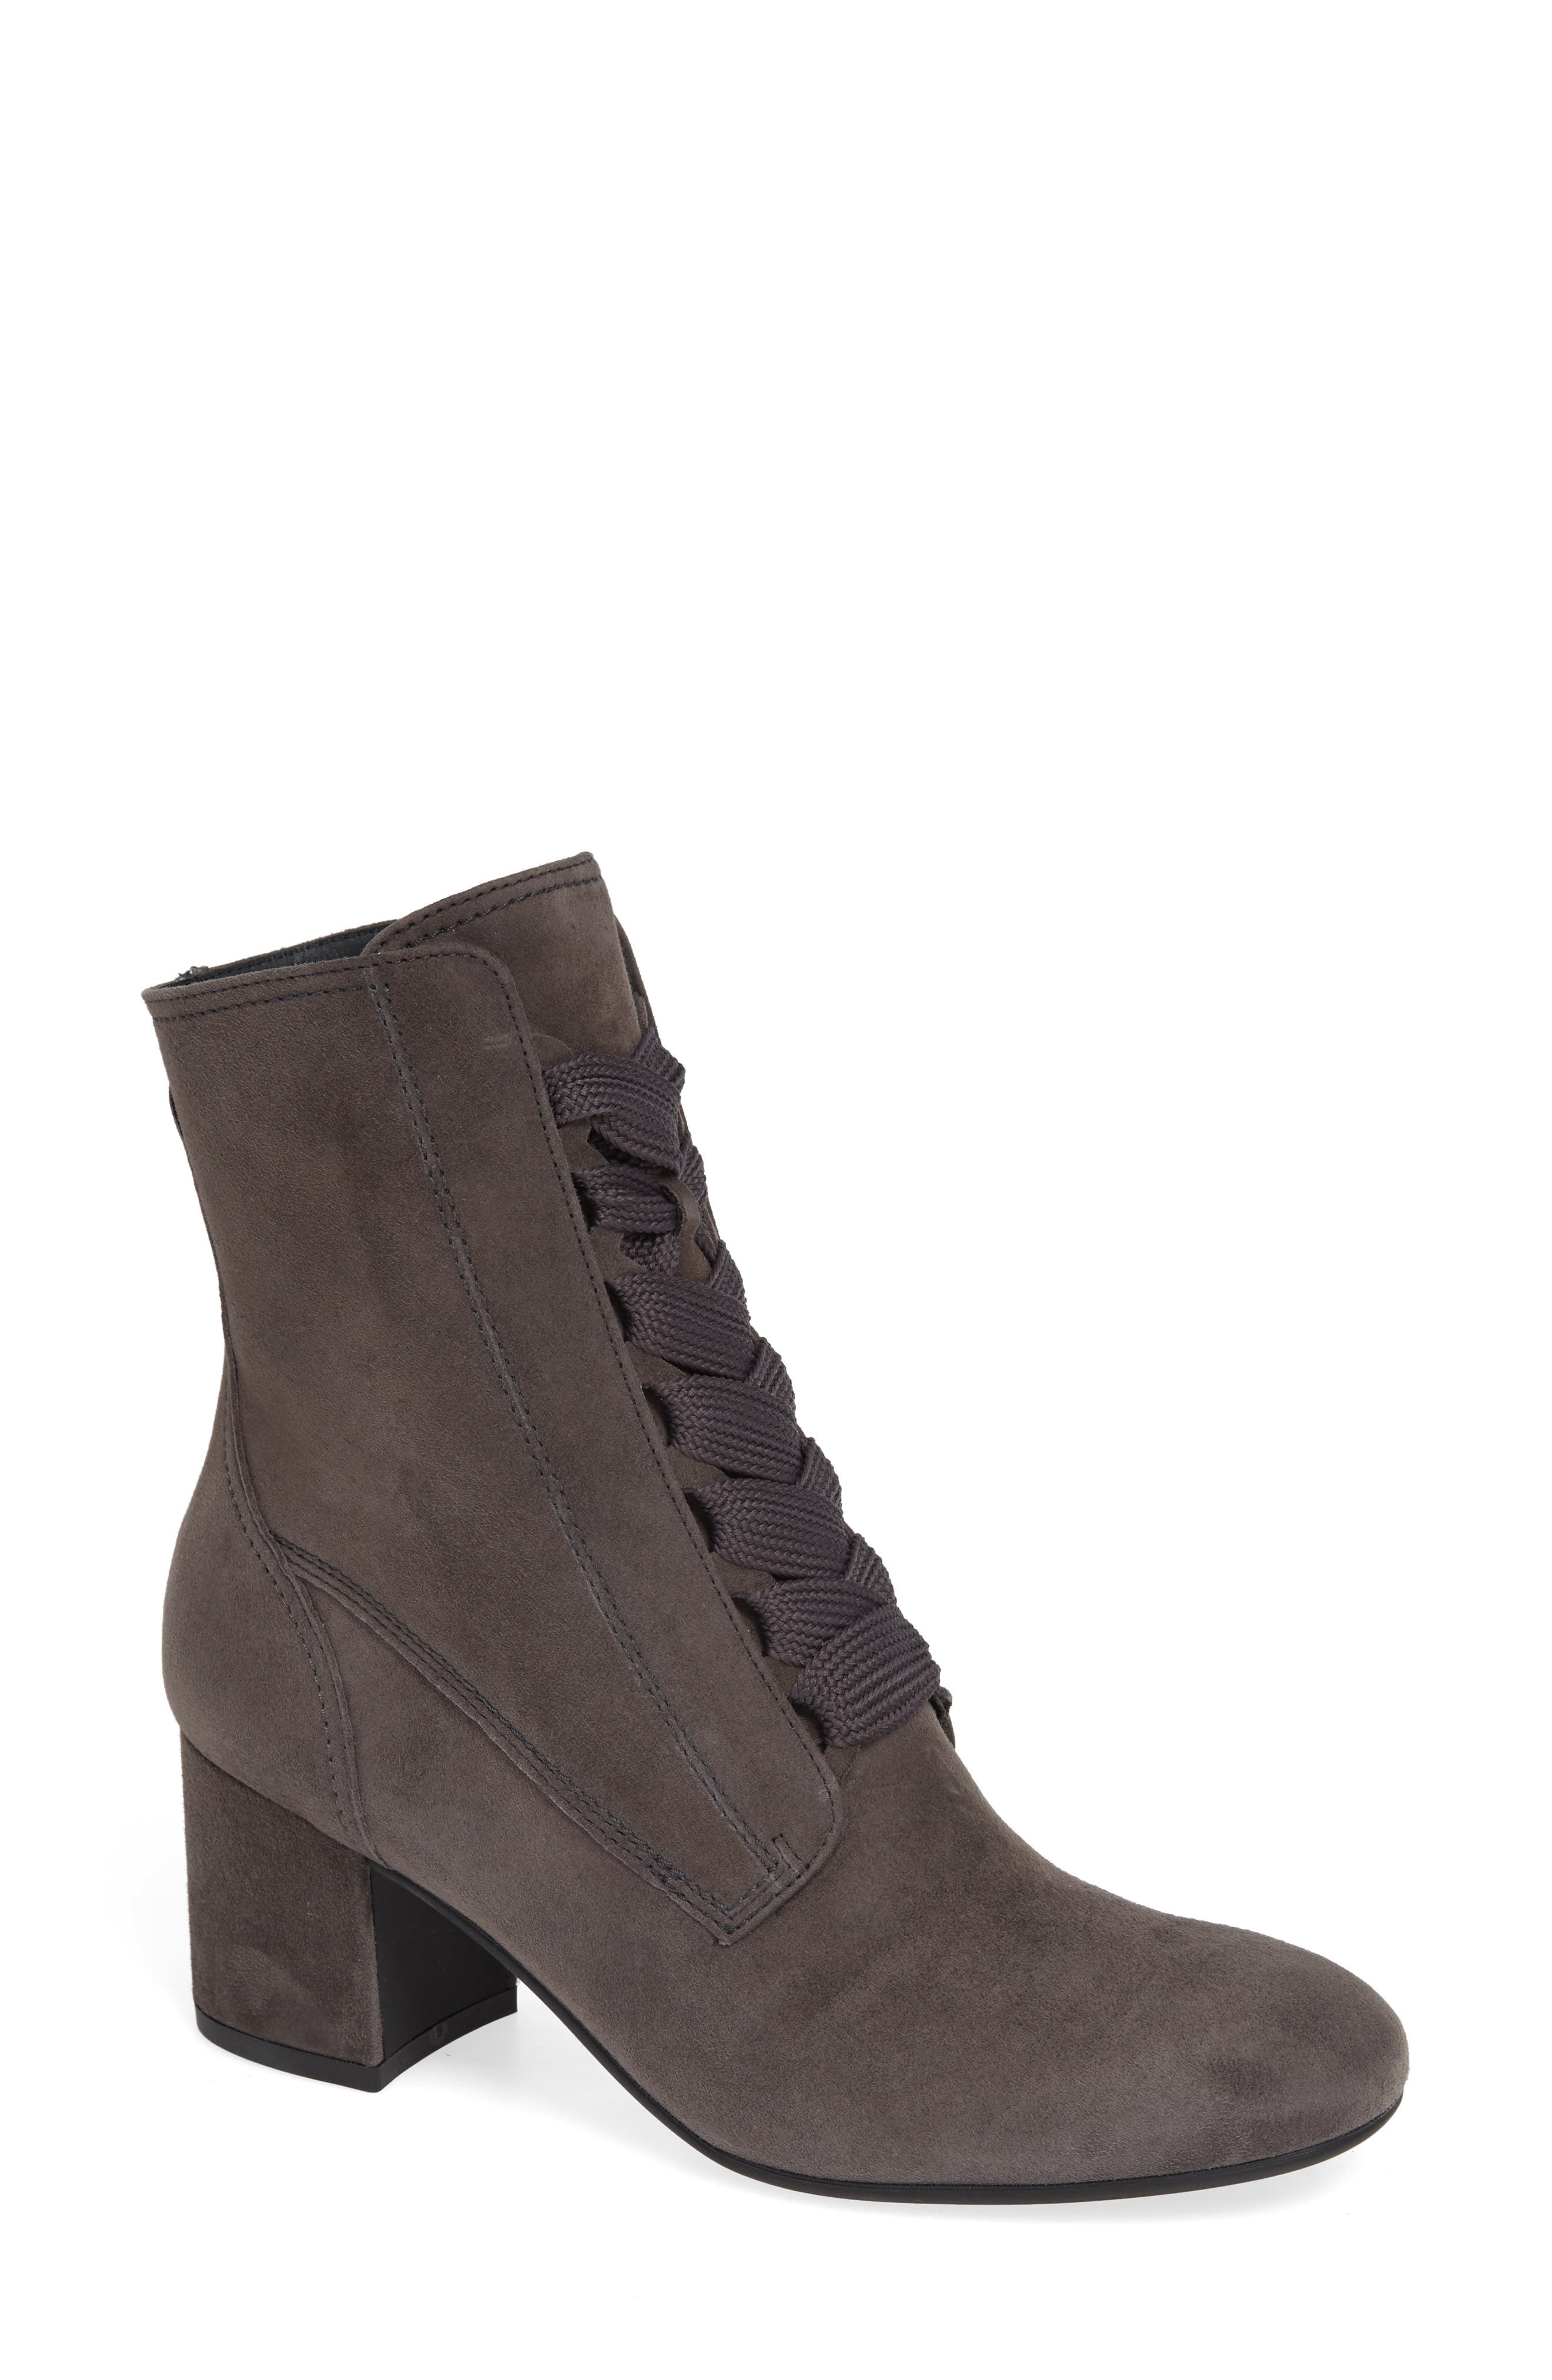 PAUL GREEN Tracy Lace-Up Bootie in Iron Suede